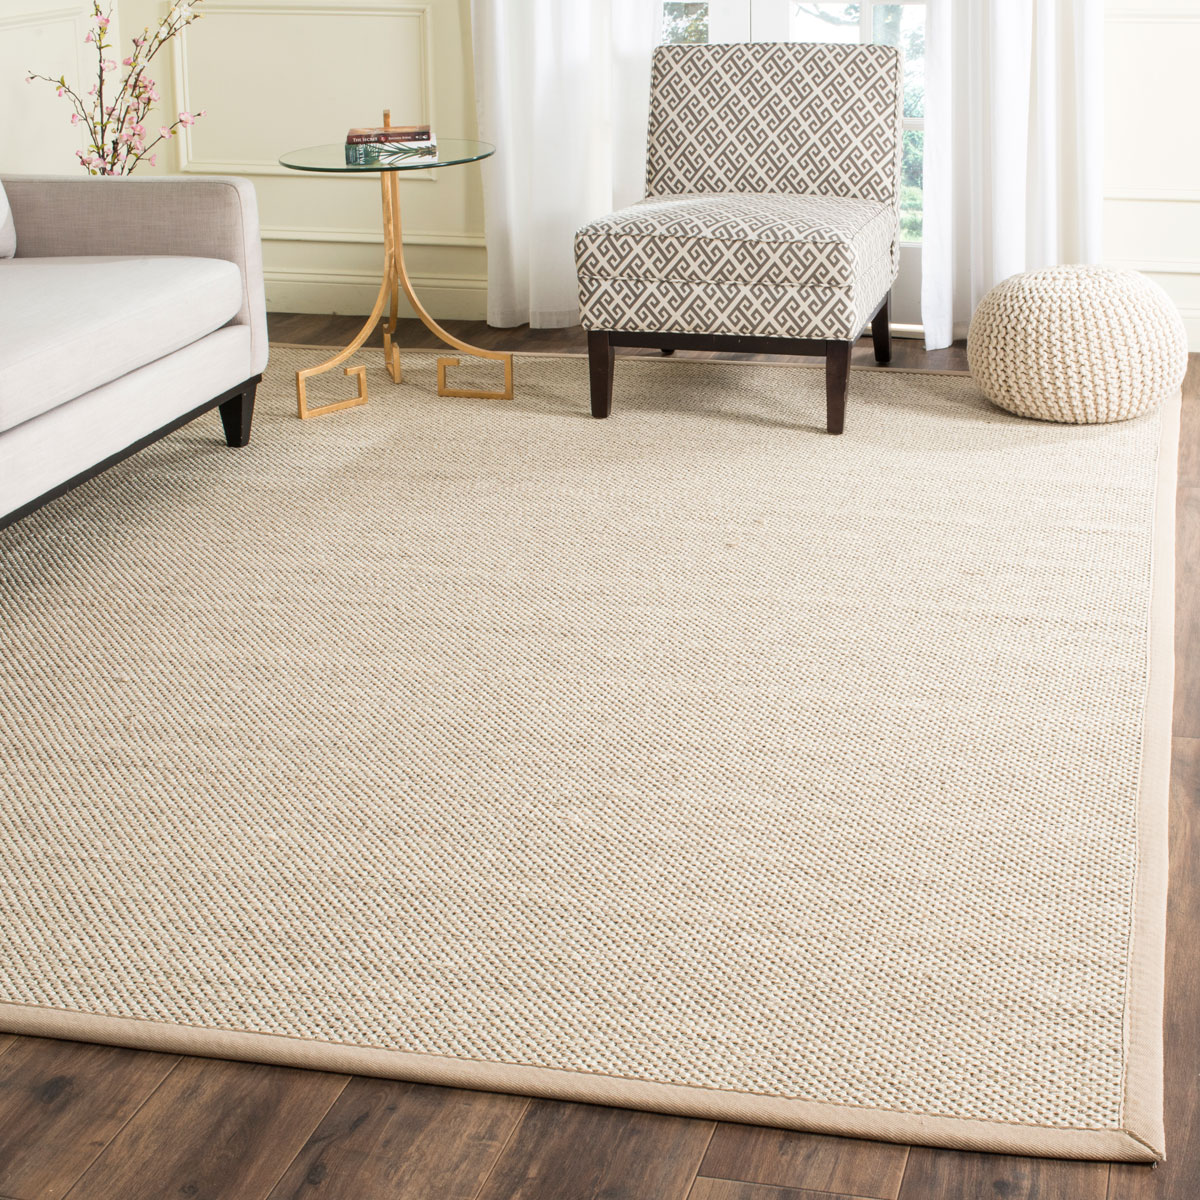 Rug Nf143b Natural Fiber Area Rugs By Safavieh